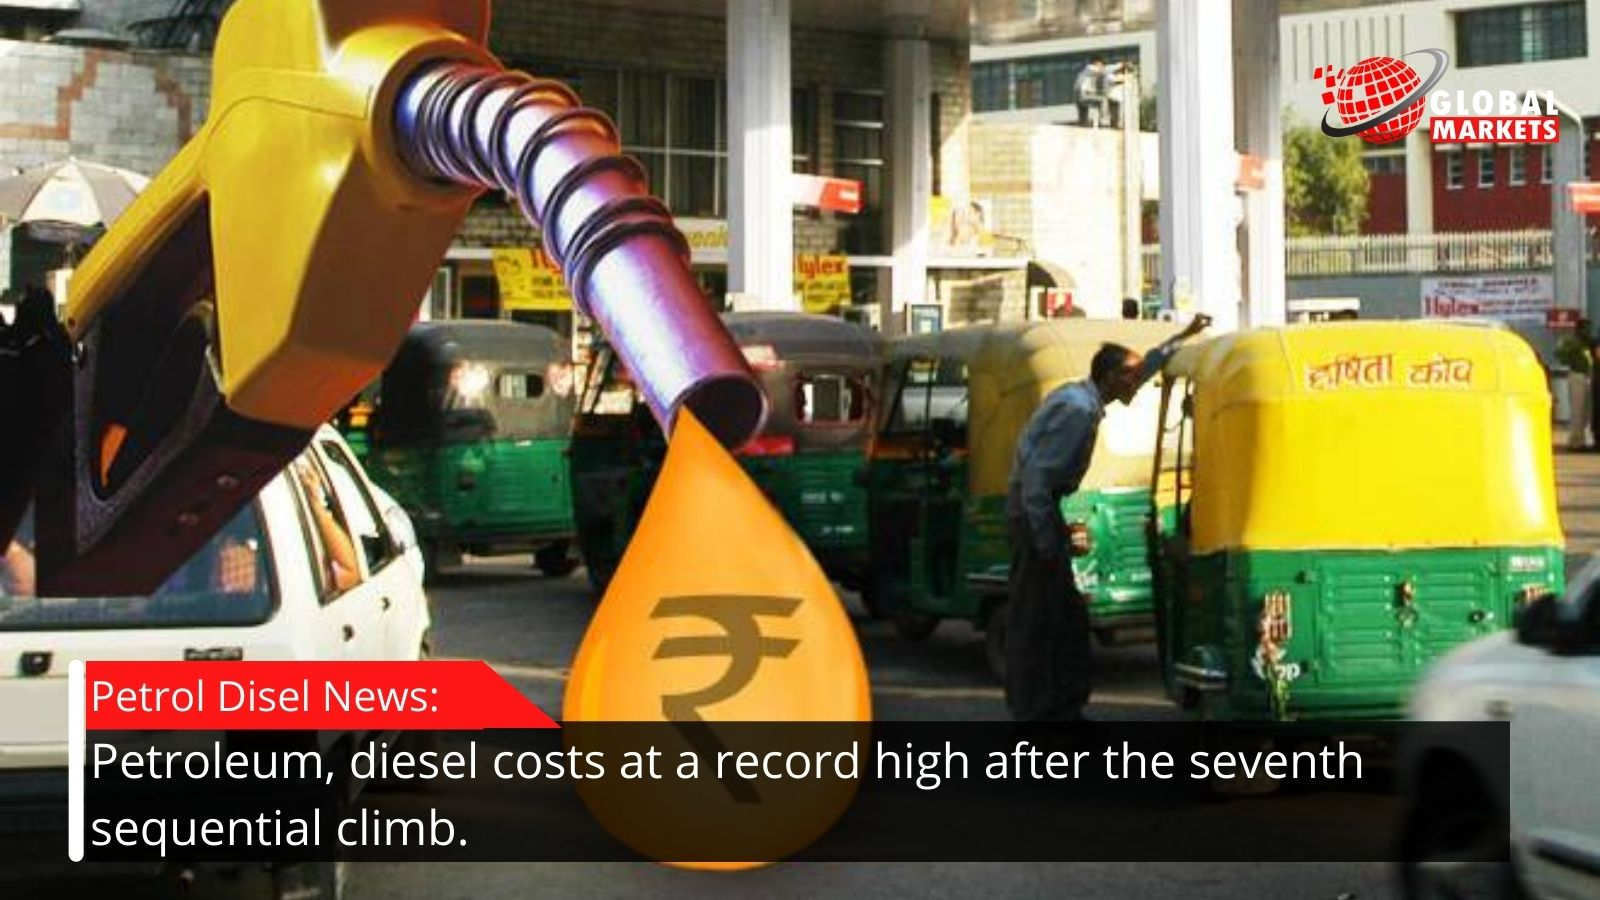 Petroleum, diesel costs at a record high after the seventh sequential climb.